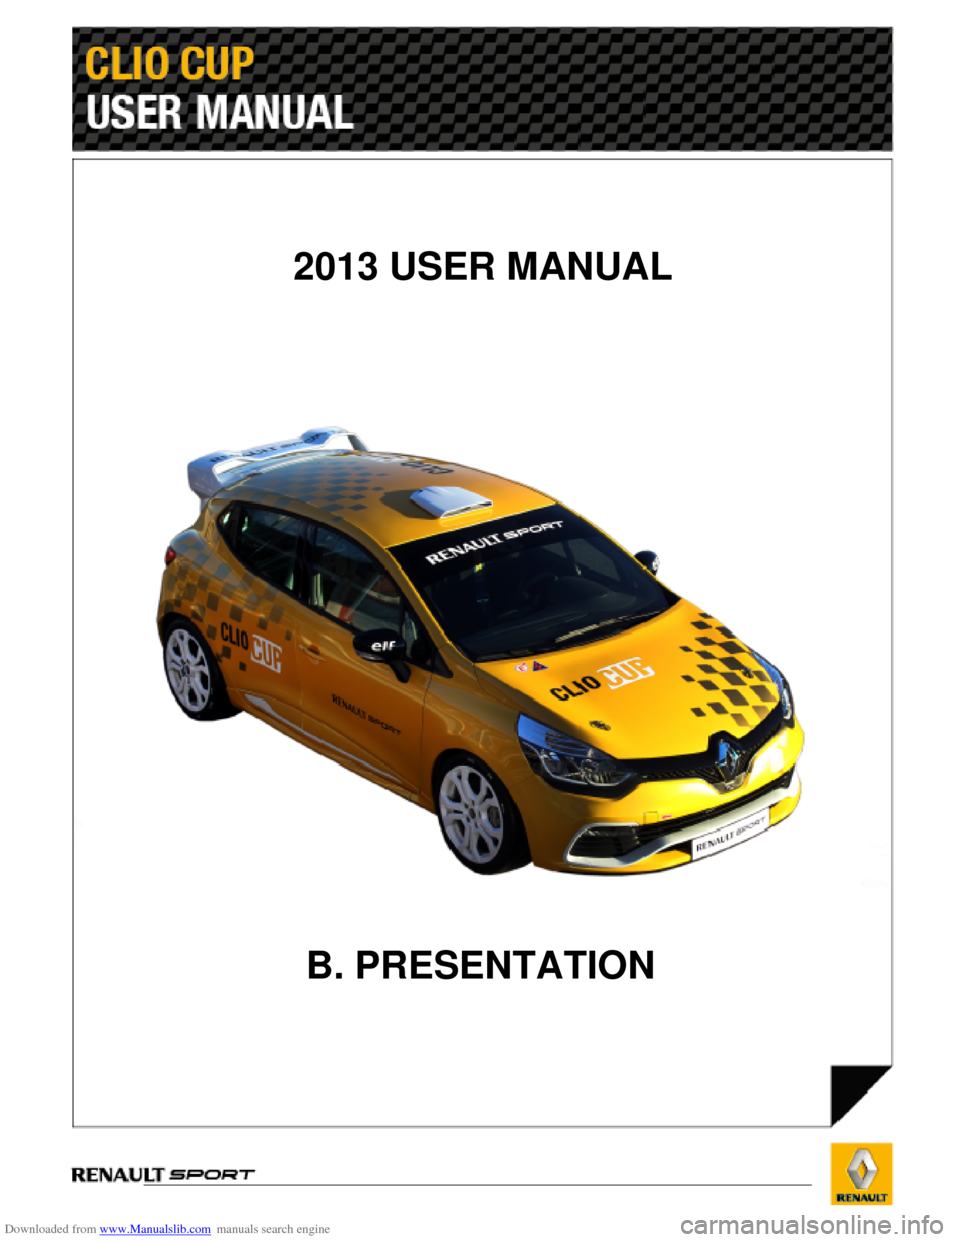 RENAULT CLIO CUP 2013 X85 / 3.G User Manual, Page 1